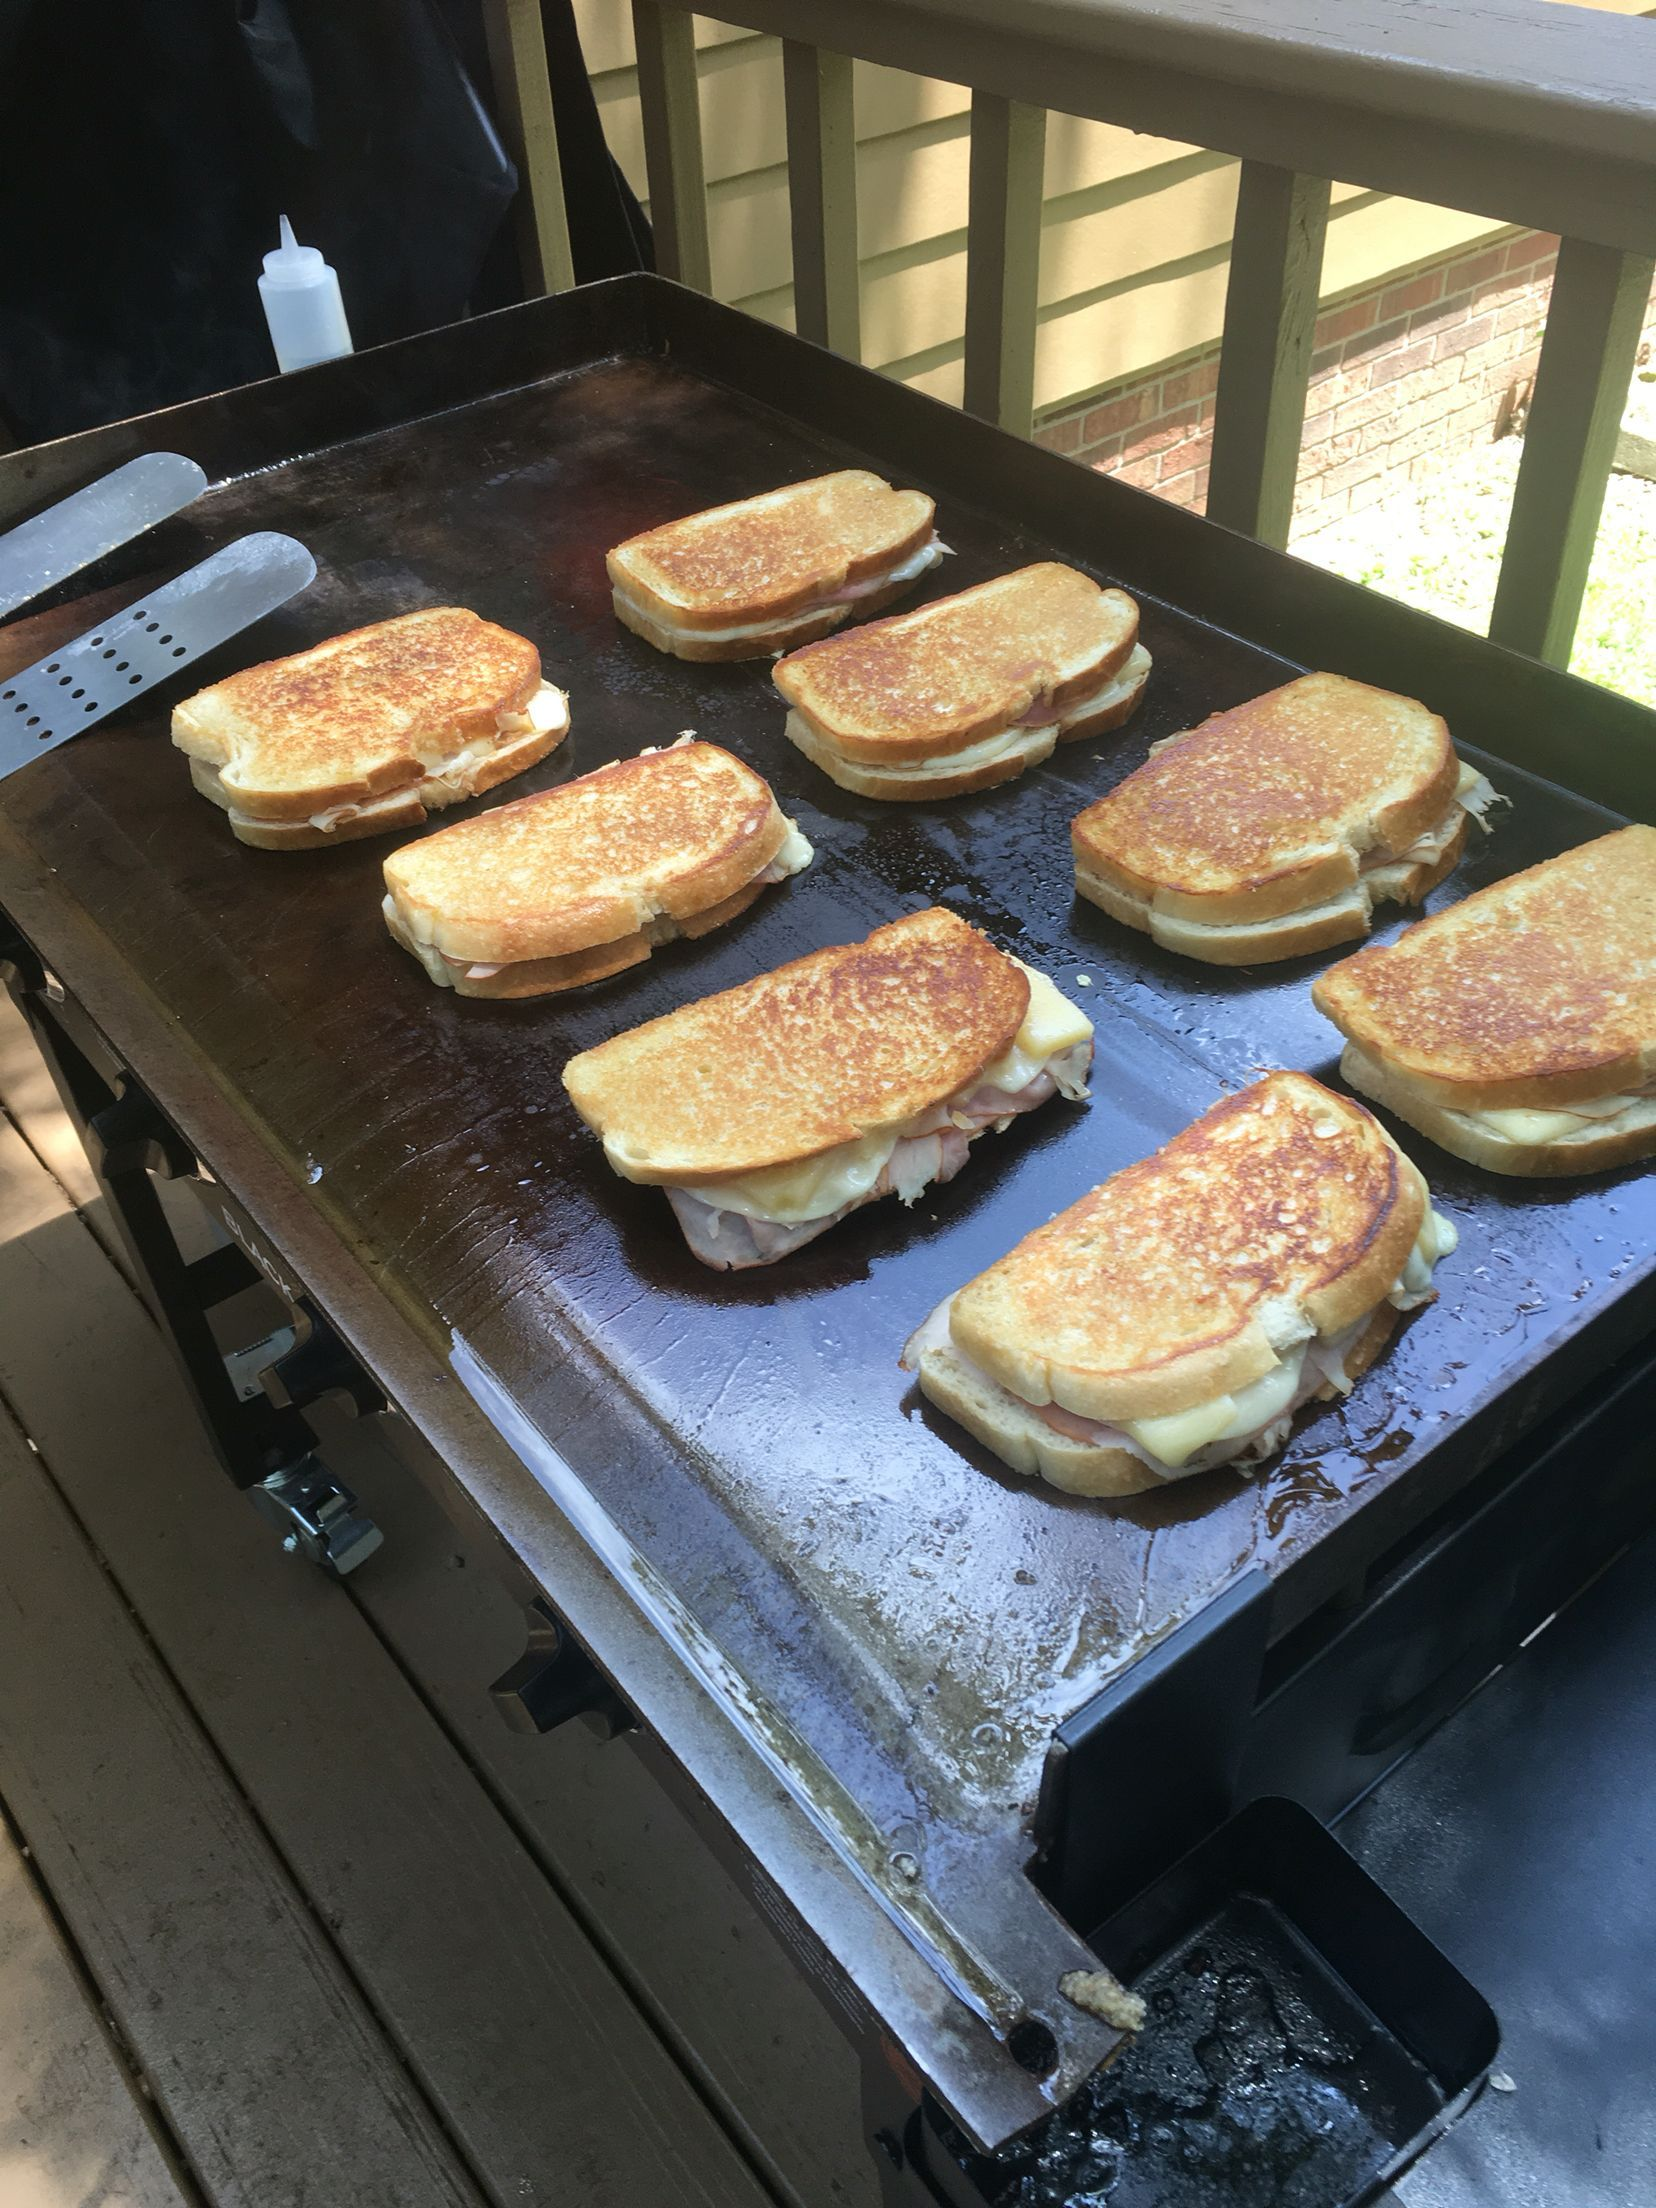 Griddle meals  Griddle recipes, Outdoor griddle recipes, Griddle